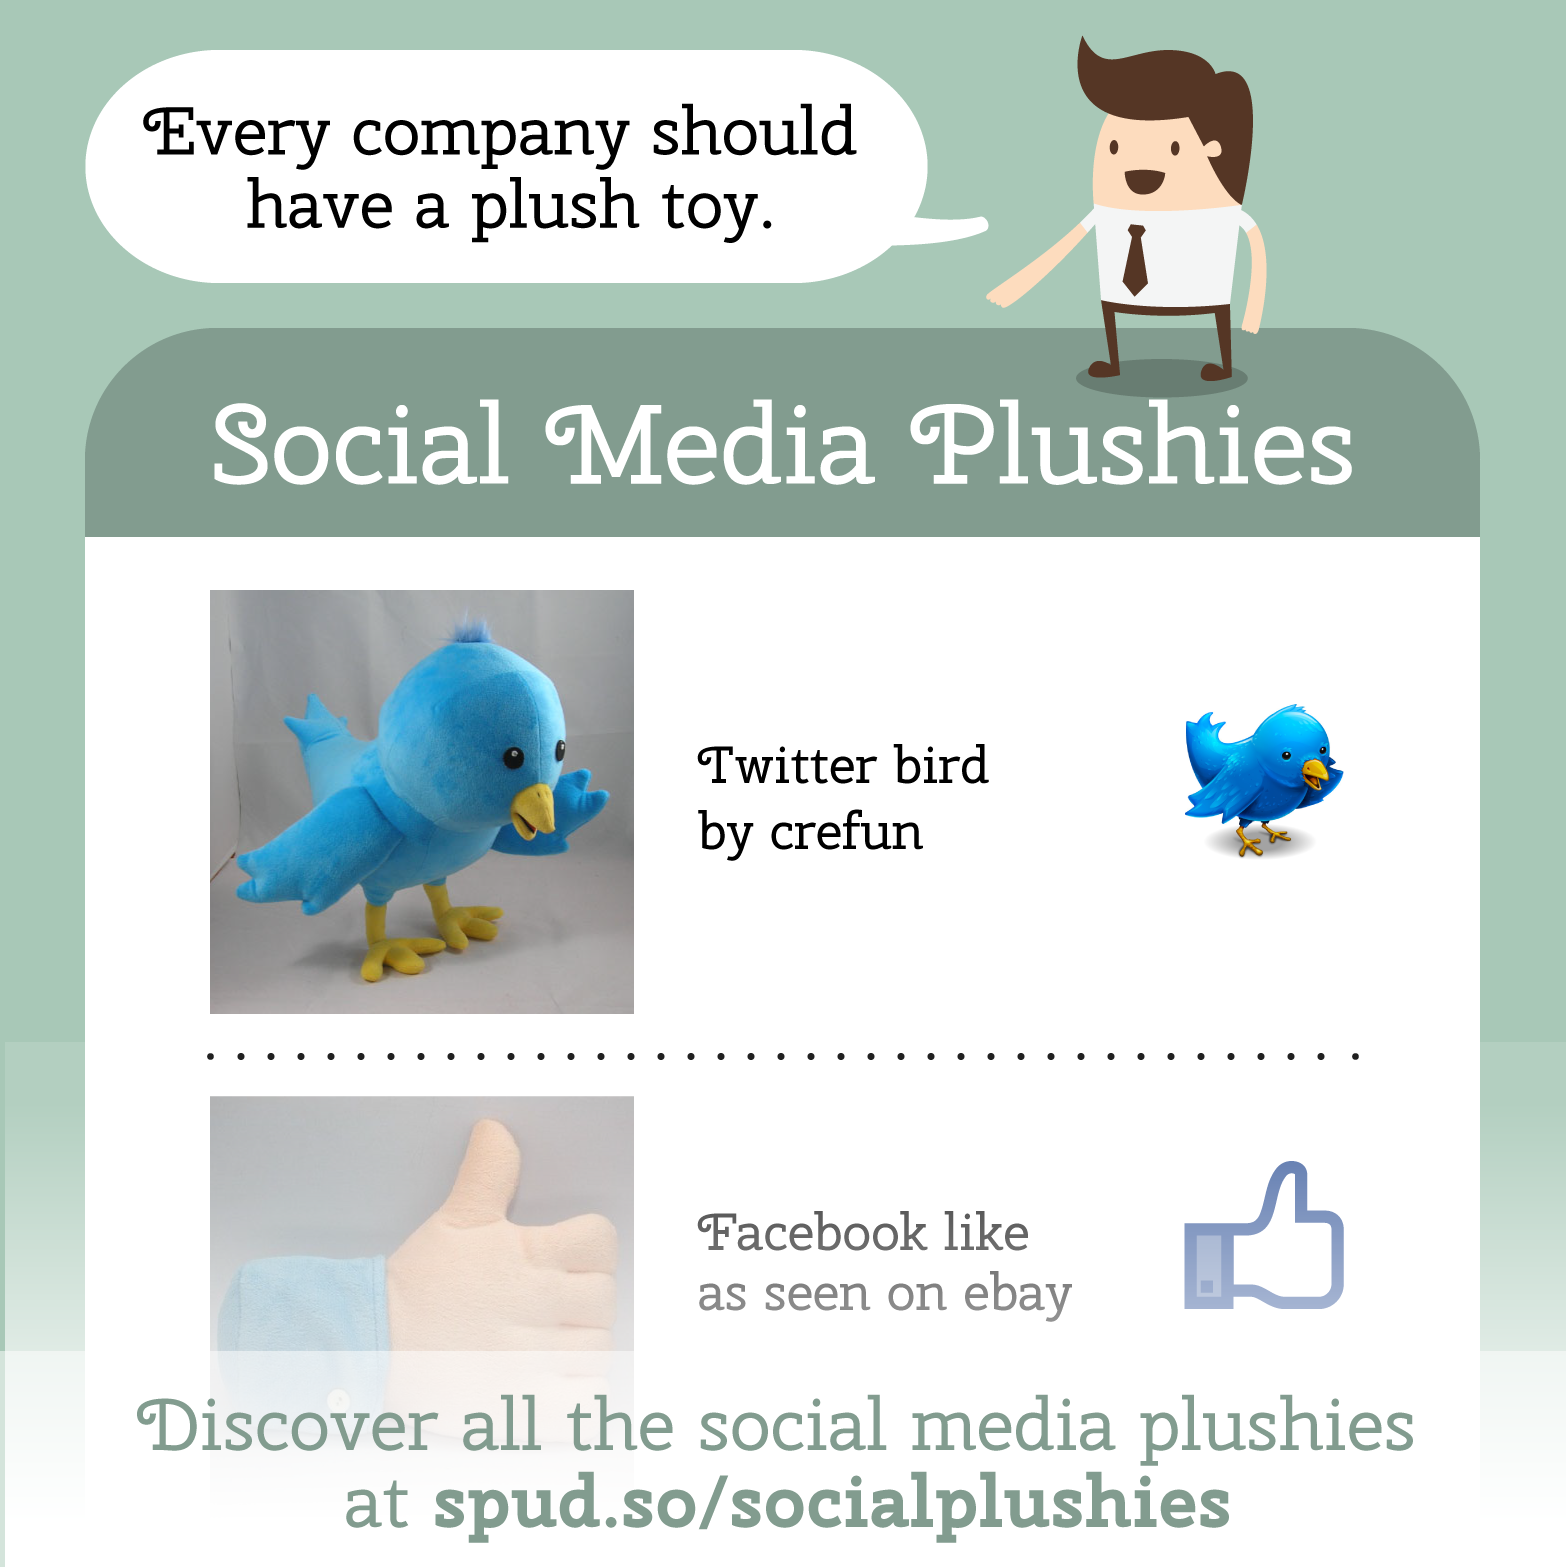 Plush toys for Twitter, Facebook, Instagram, Hootsuite, and Reddit